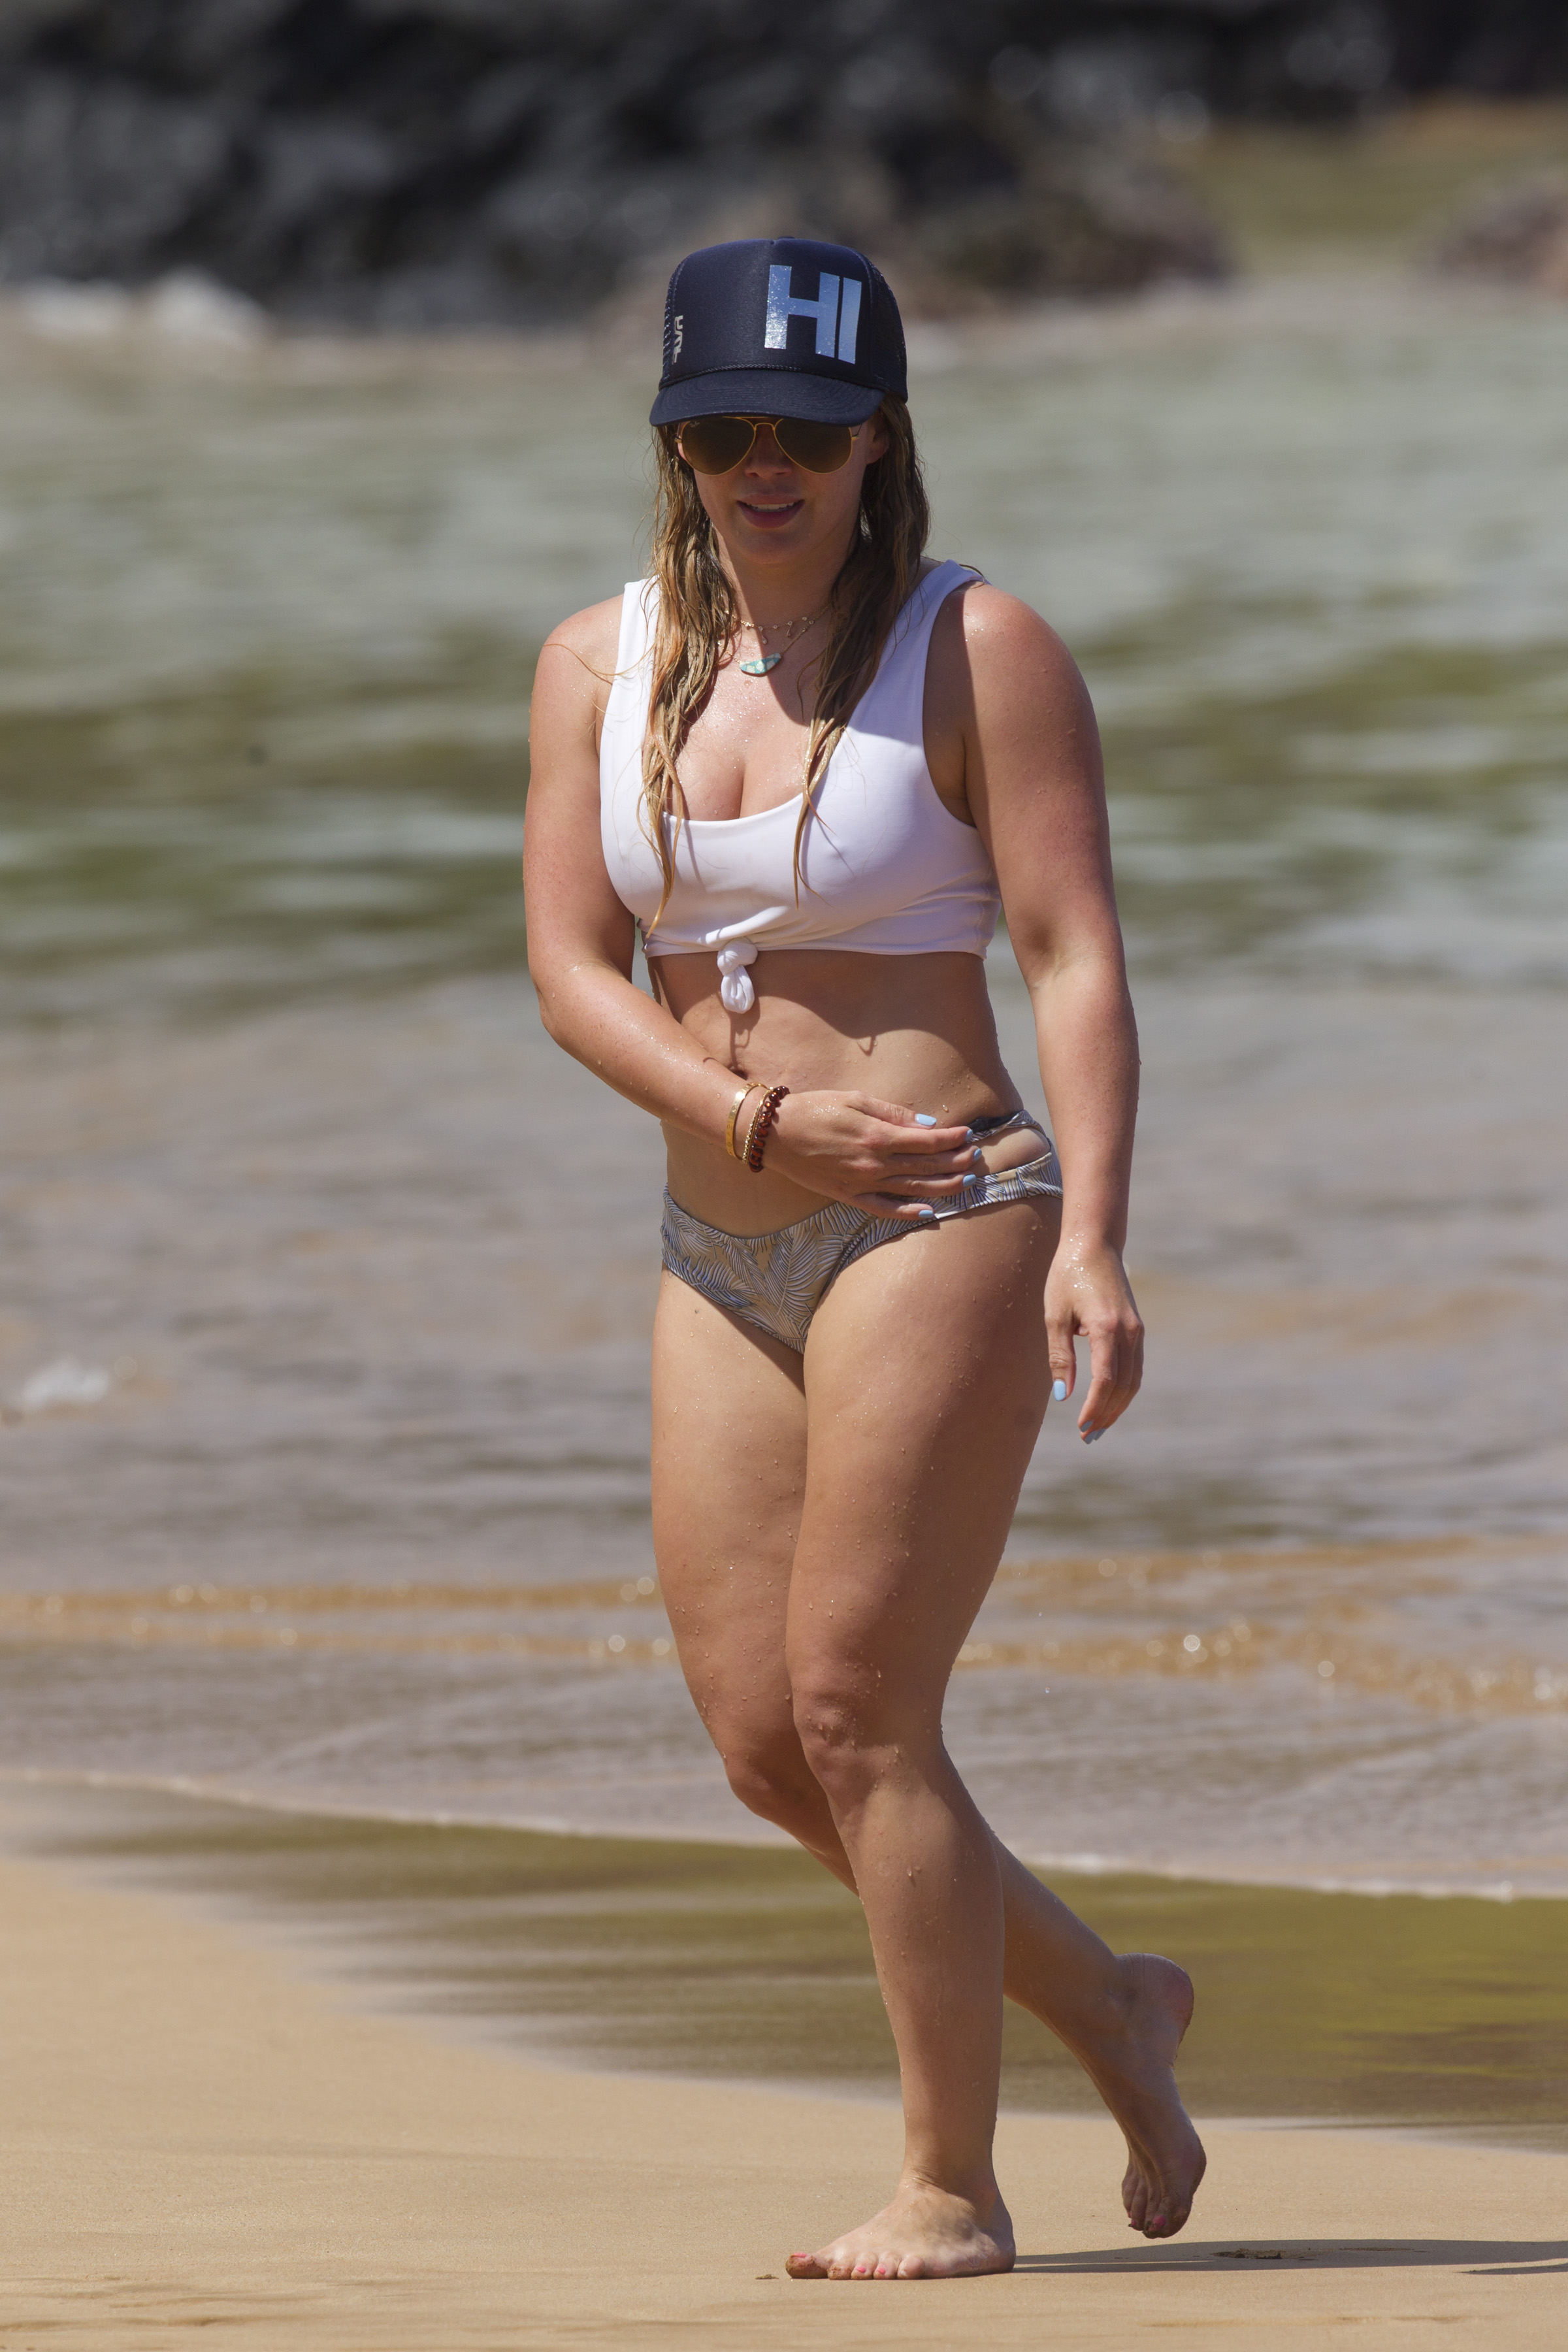 Hilary Duff seen wearing a 2 piece bikini for a change on her Maui vacation. She went snorkeling with her son and a friend. <P> Pictured: Hilary Duff <B>Ref: SPL1550452  040817  </B><BR/> Picture by: starsurf / Splash News<BR/> </P><P> <B>Splash News and Pictures</B><BR/> Los Angeles:310-821-2666<BR/> New York:212-619-2666<BR/> London:870-934-2666<BR/> <span id=